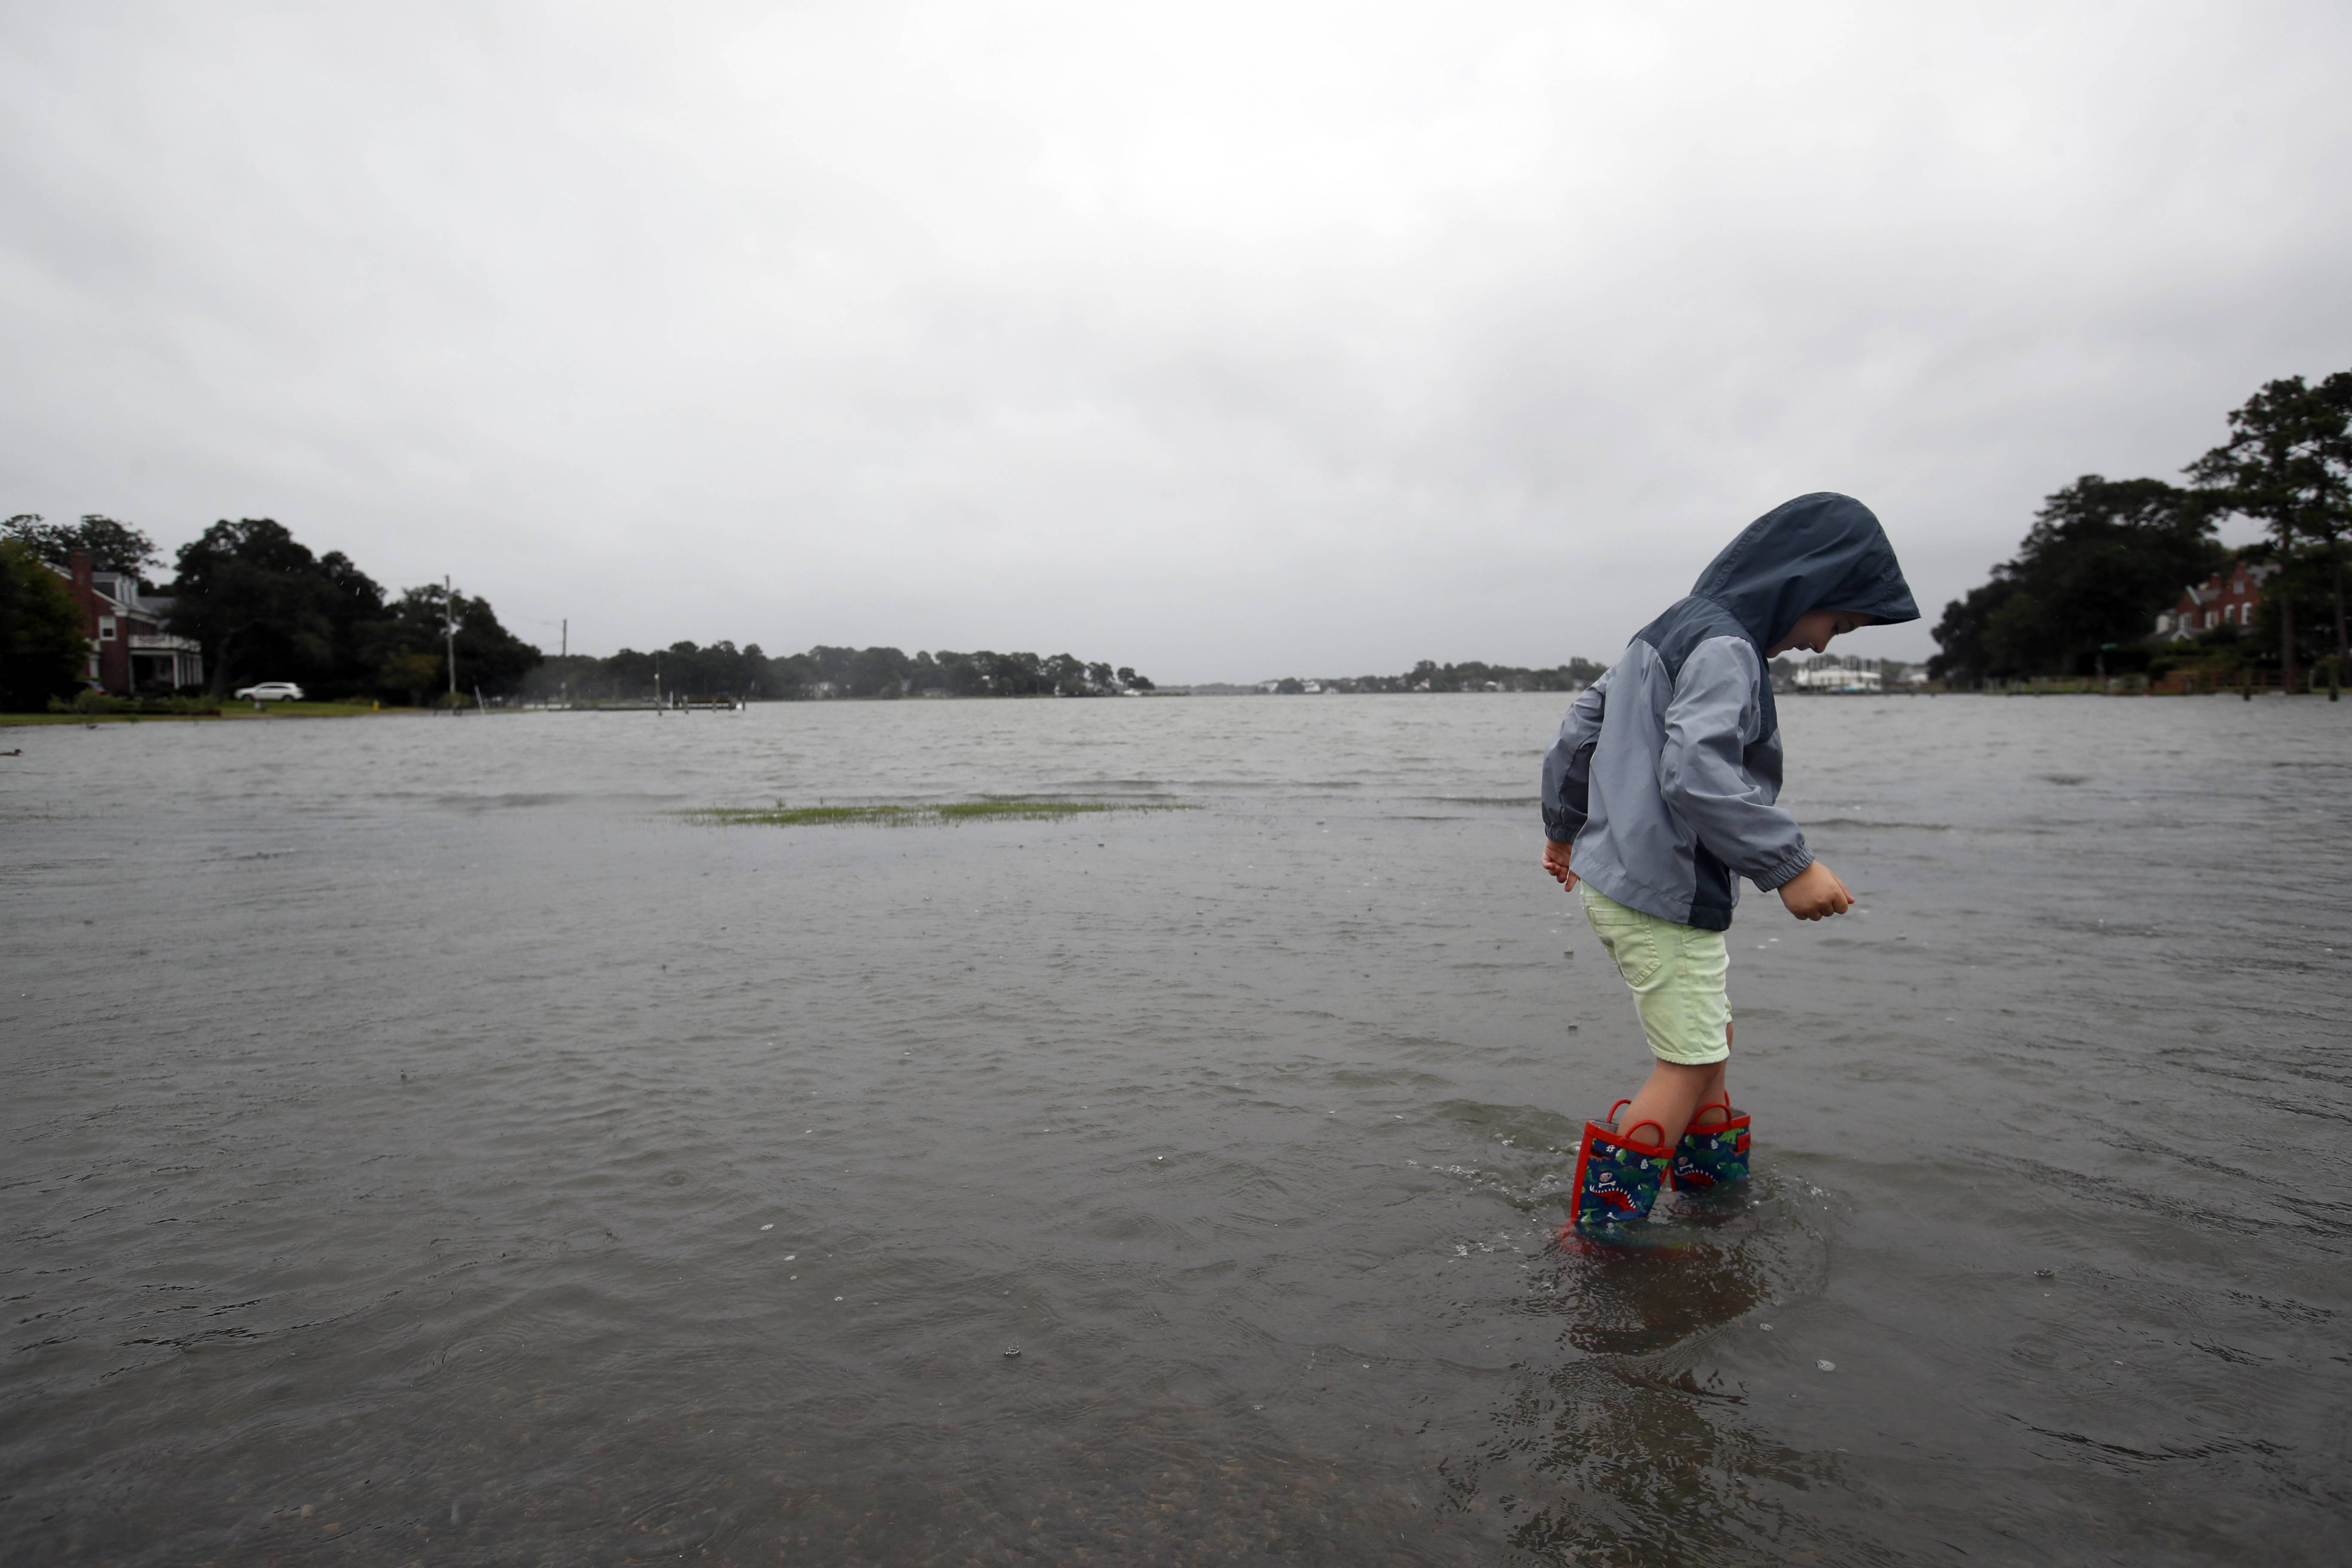 Emmett Marshall, 4, from Norfolk, Va. wades in floodwaters, Friday, Sept. 14, 2018, in the Larchmont area of Norfolk, Va., as the effects of Hurricane Florence are felt.